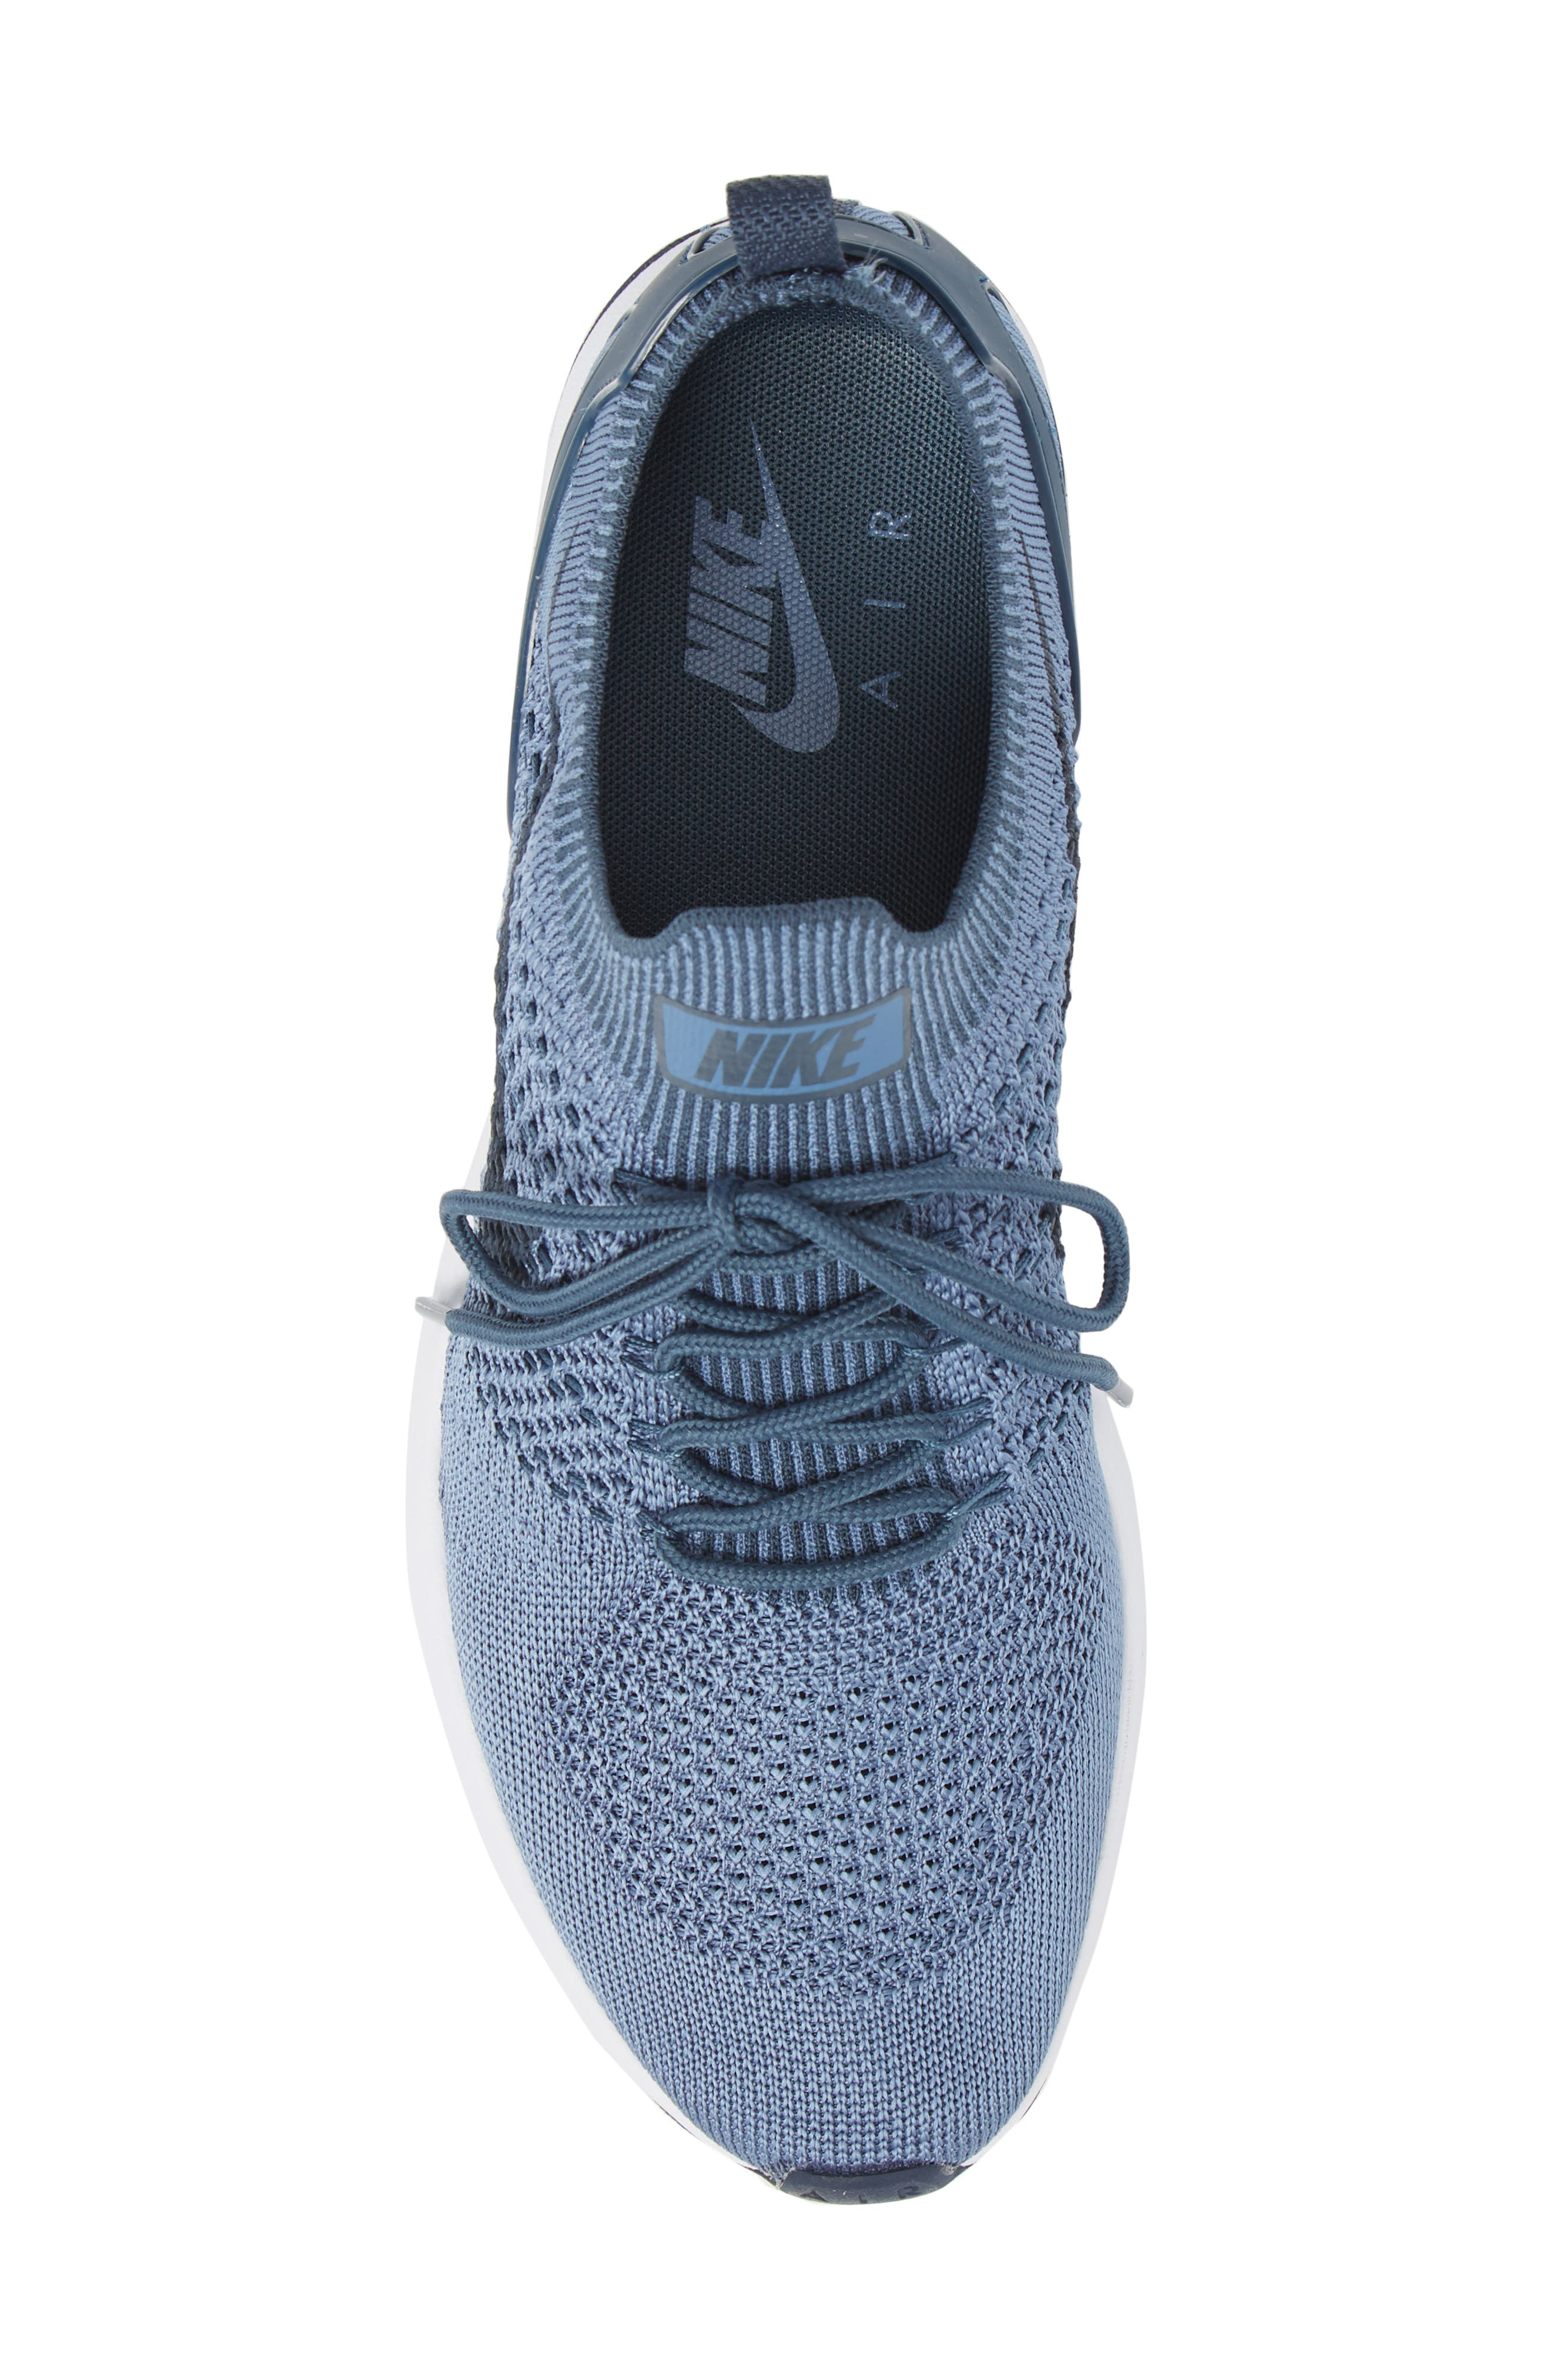 Air Zoom Mariah Flyknit Racer Sneaker,                             Alternate thumbnail 5, color,                             OCEAN FOG/ BLUE/ WHITE